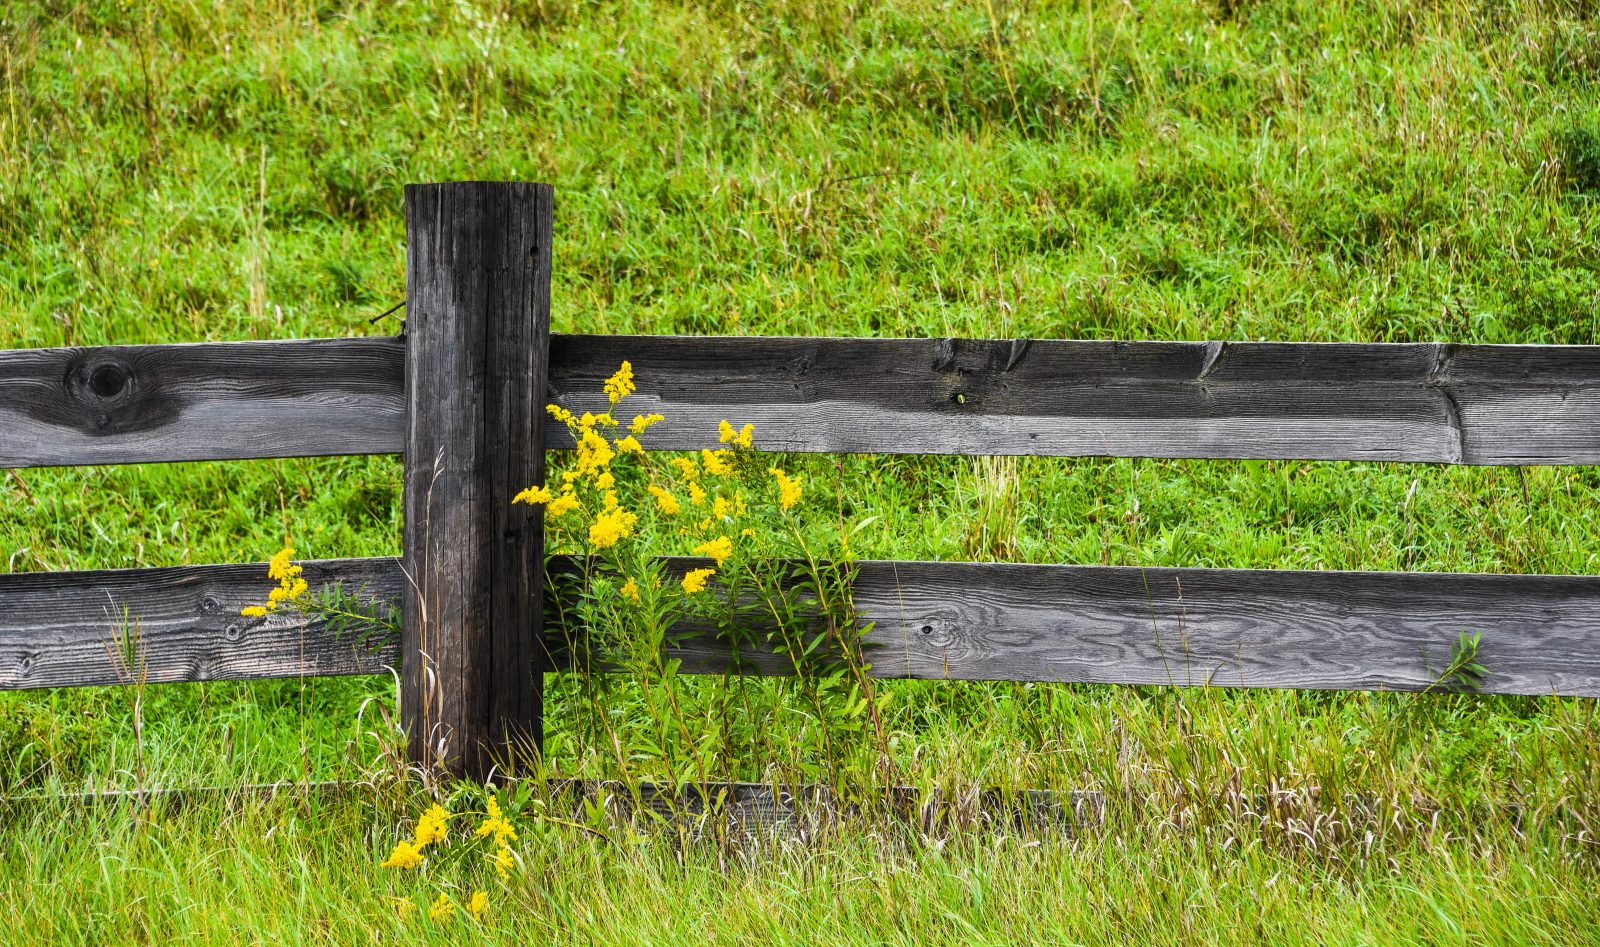 Flowers Along the Fence